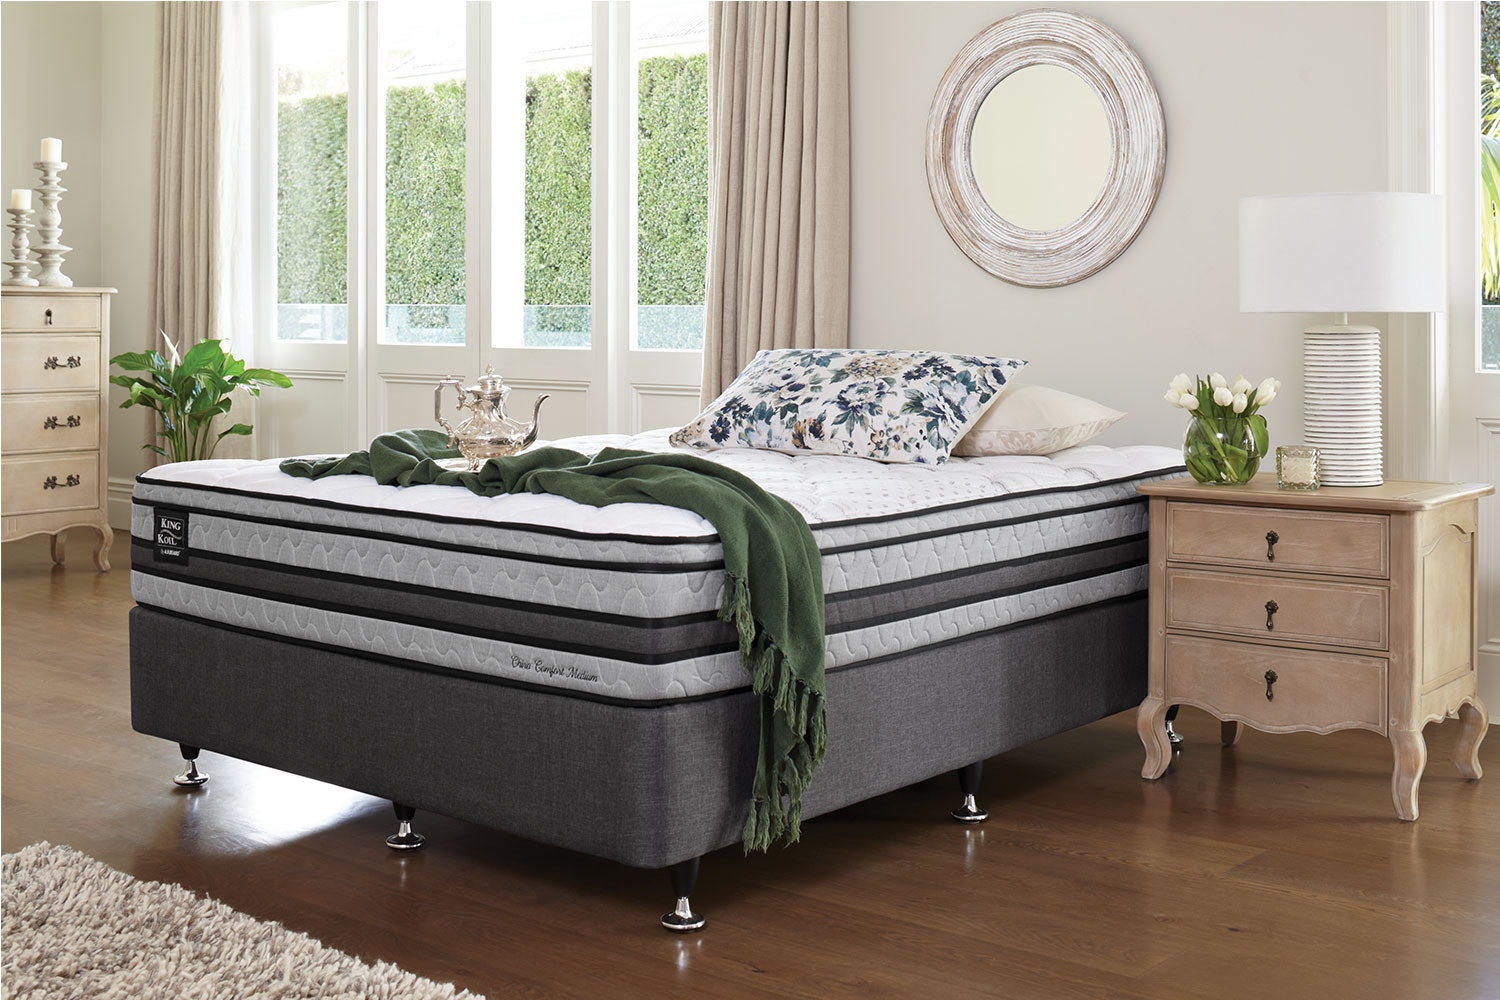 Chiro Comfort Medium Queen Bed by King Koil